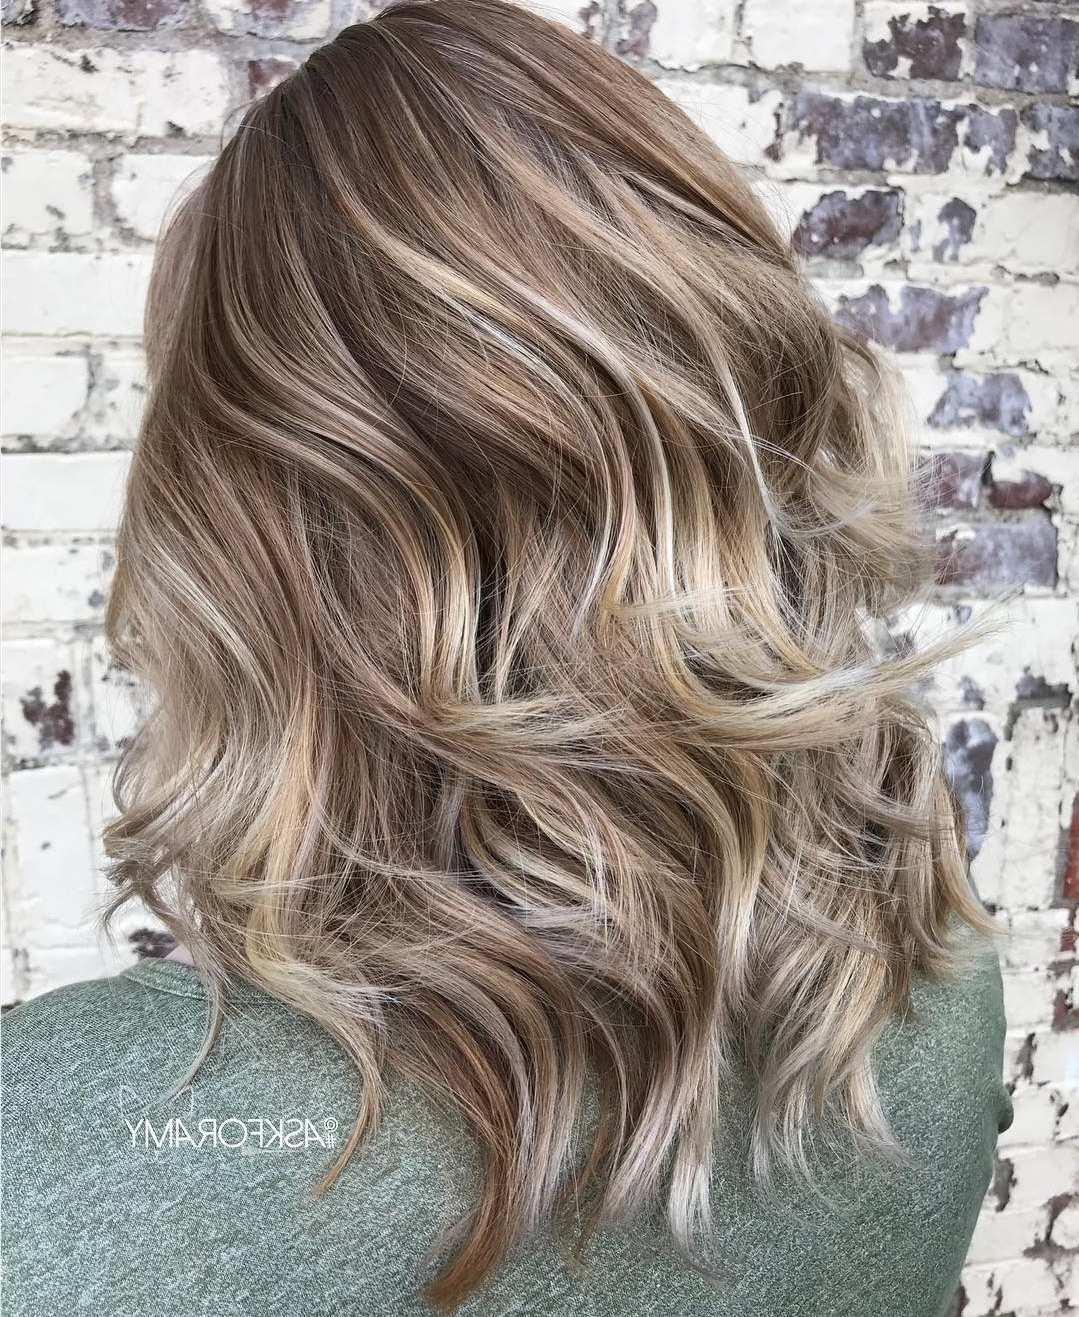 50 Fabulous Medium Length Layered Hairstyles – Hair Adviser Within Most Recent Medium Haircuts With Chunky Swoopy Layers (View 7 of 20)